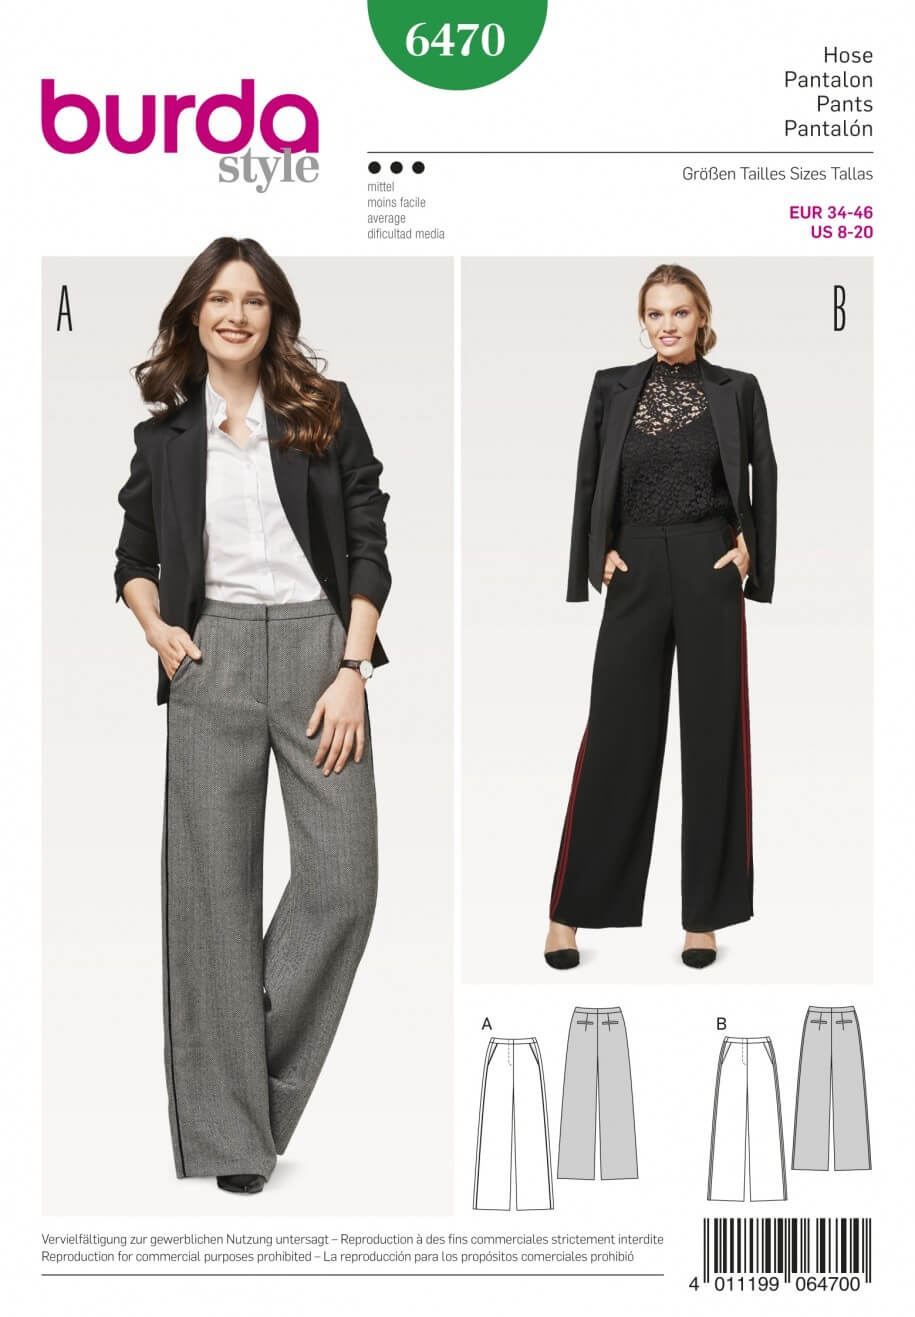 Burda Style Women's Trousers Lily Marlene Dress Sewing Pattern 6470